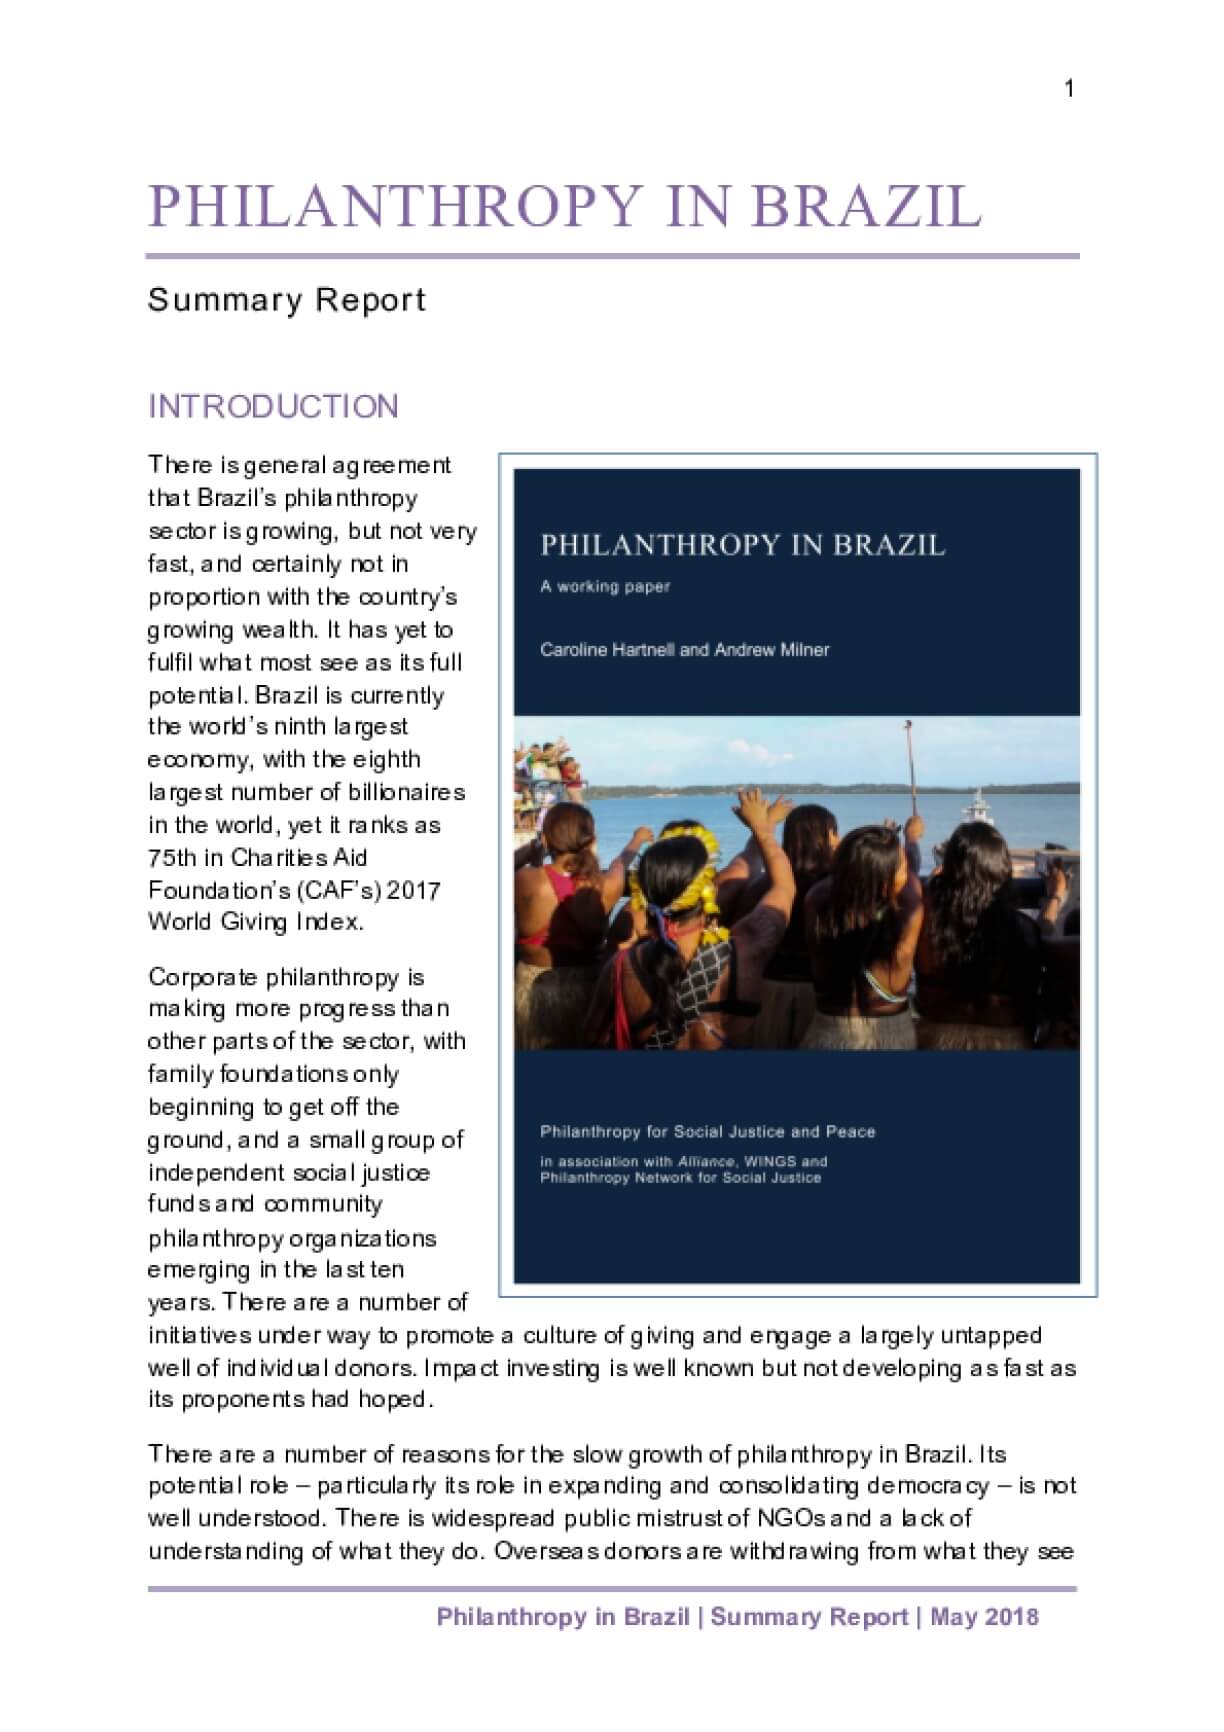 Philanthropy in Brazil - Summary in English